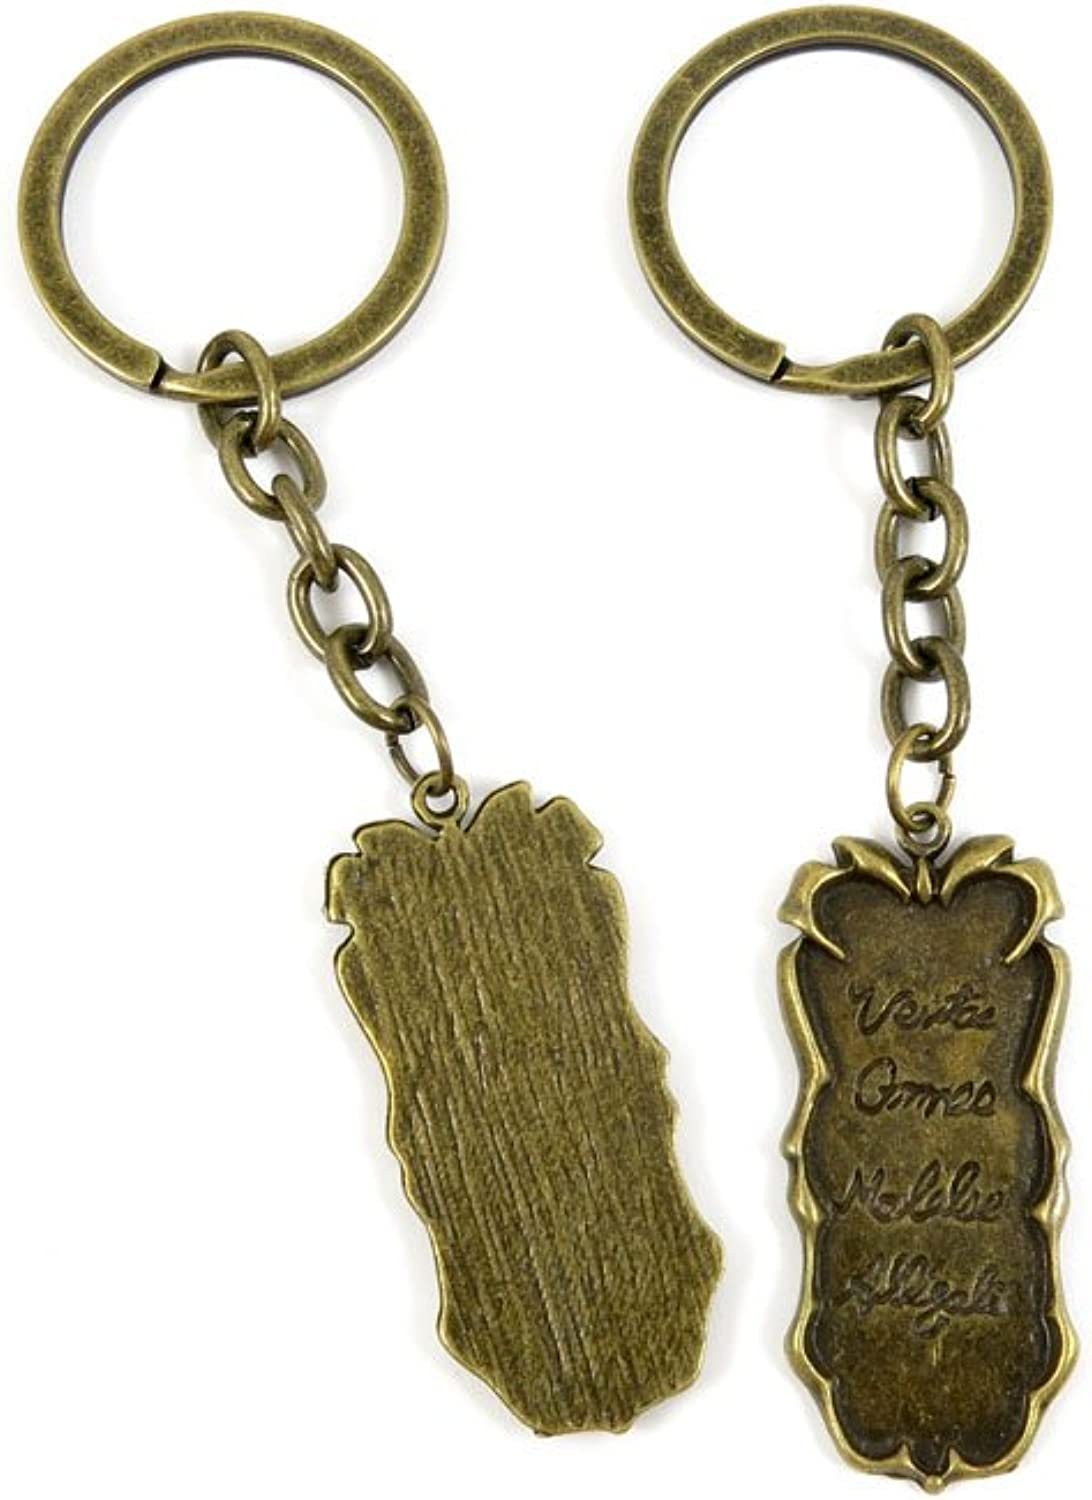 100 PCS Keyrings Keychains Key Ring Chains Tags Jewelry Findings Clasps Buckles Supplies C3NN8 Words Signs